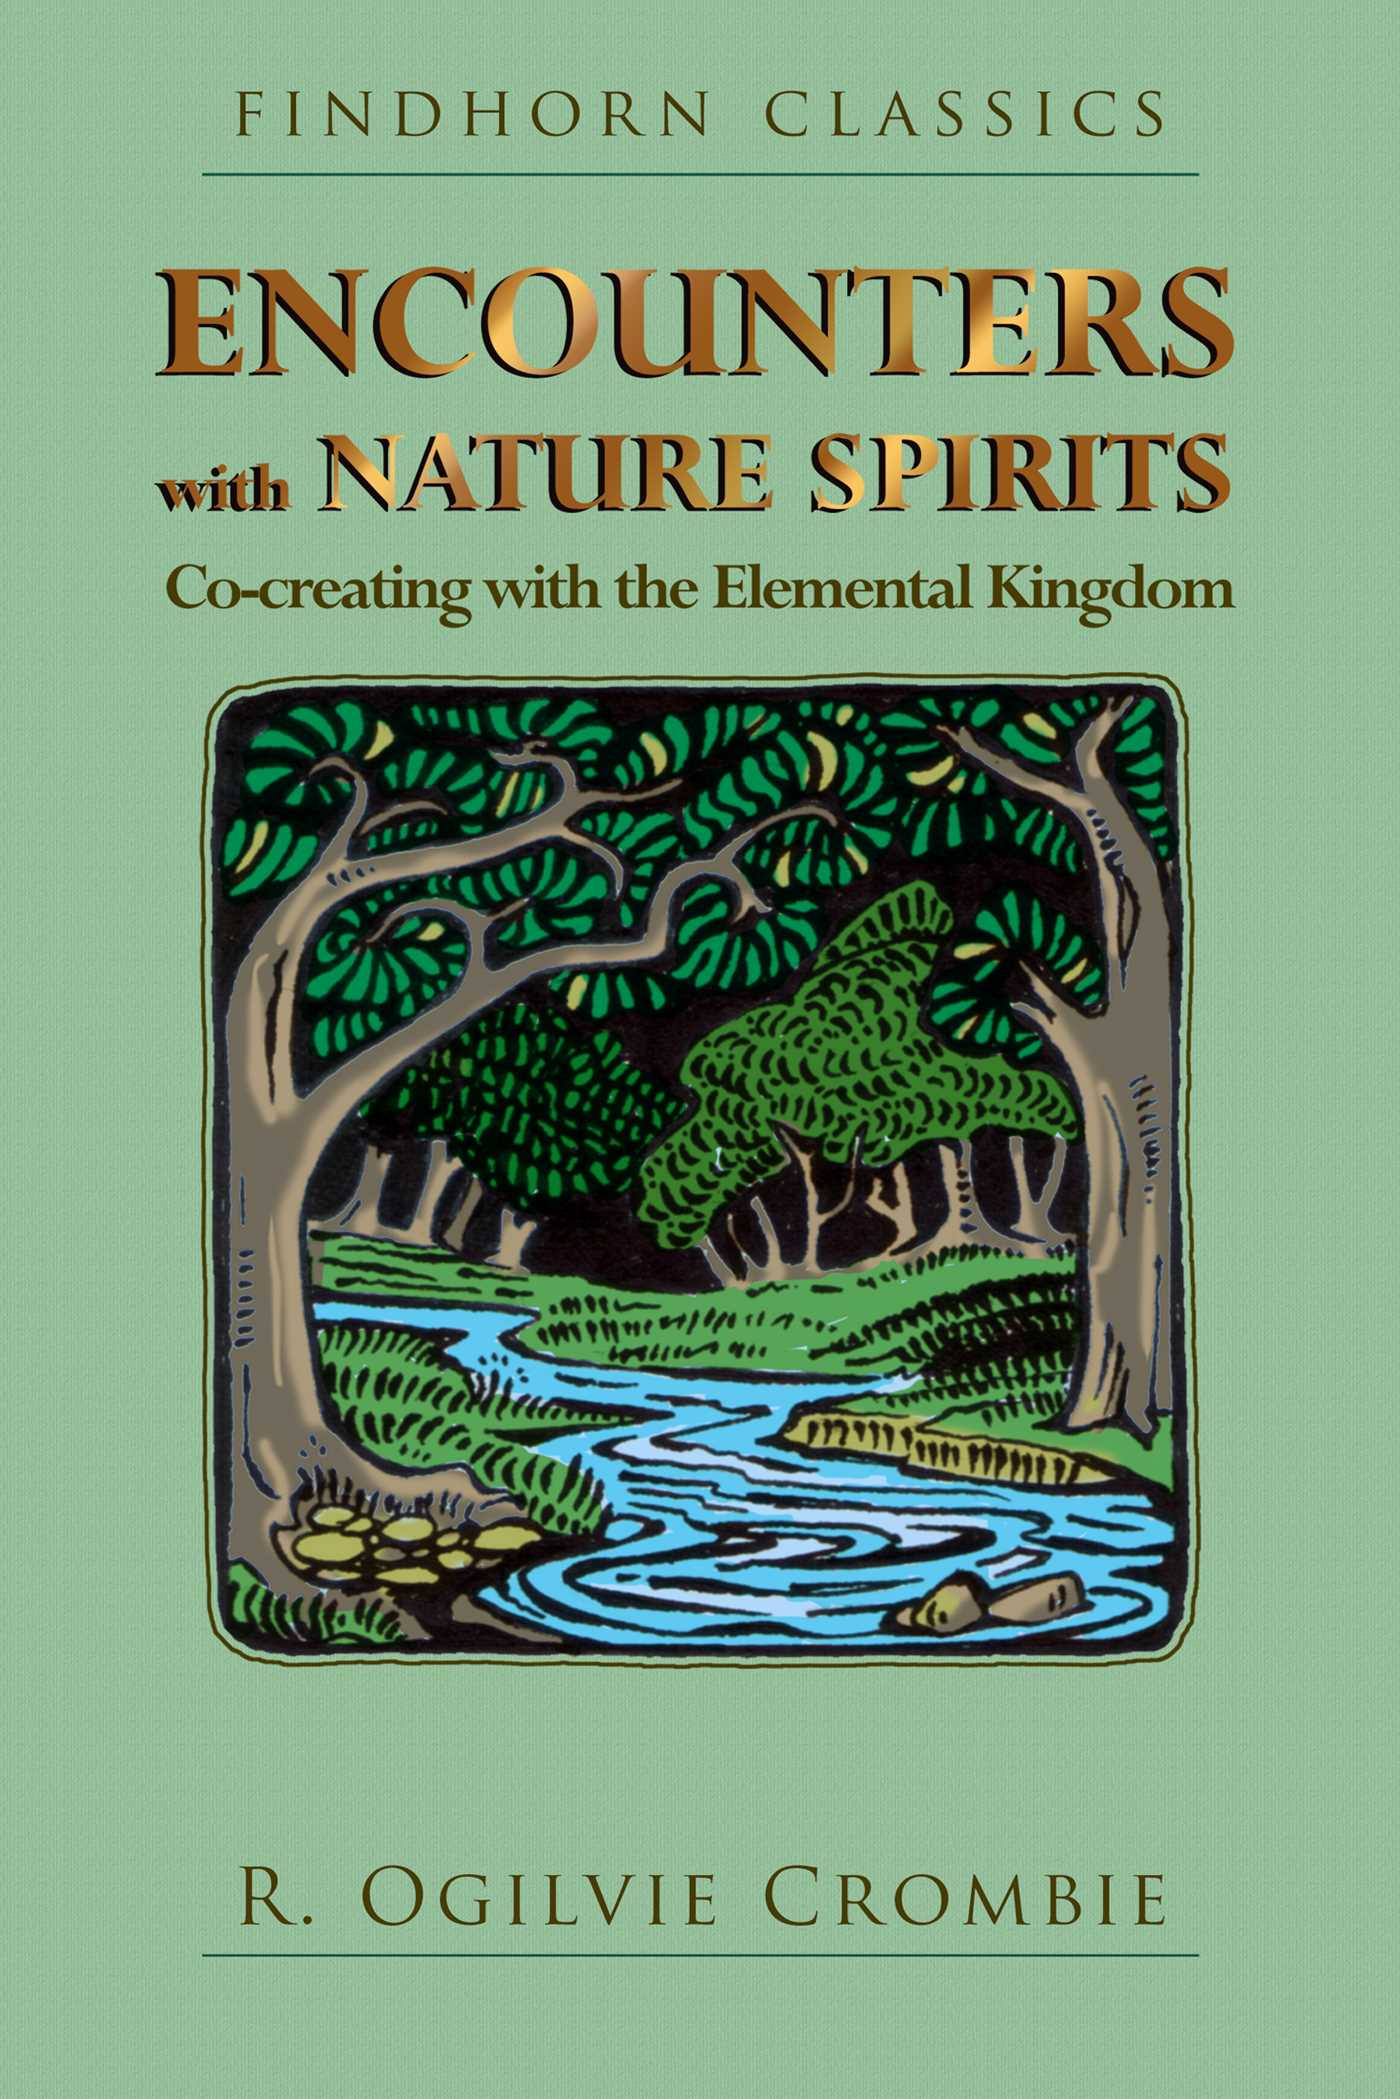 Encounters with nature spirits 9781620558959 hr